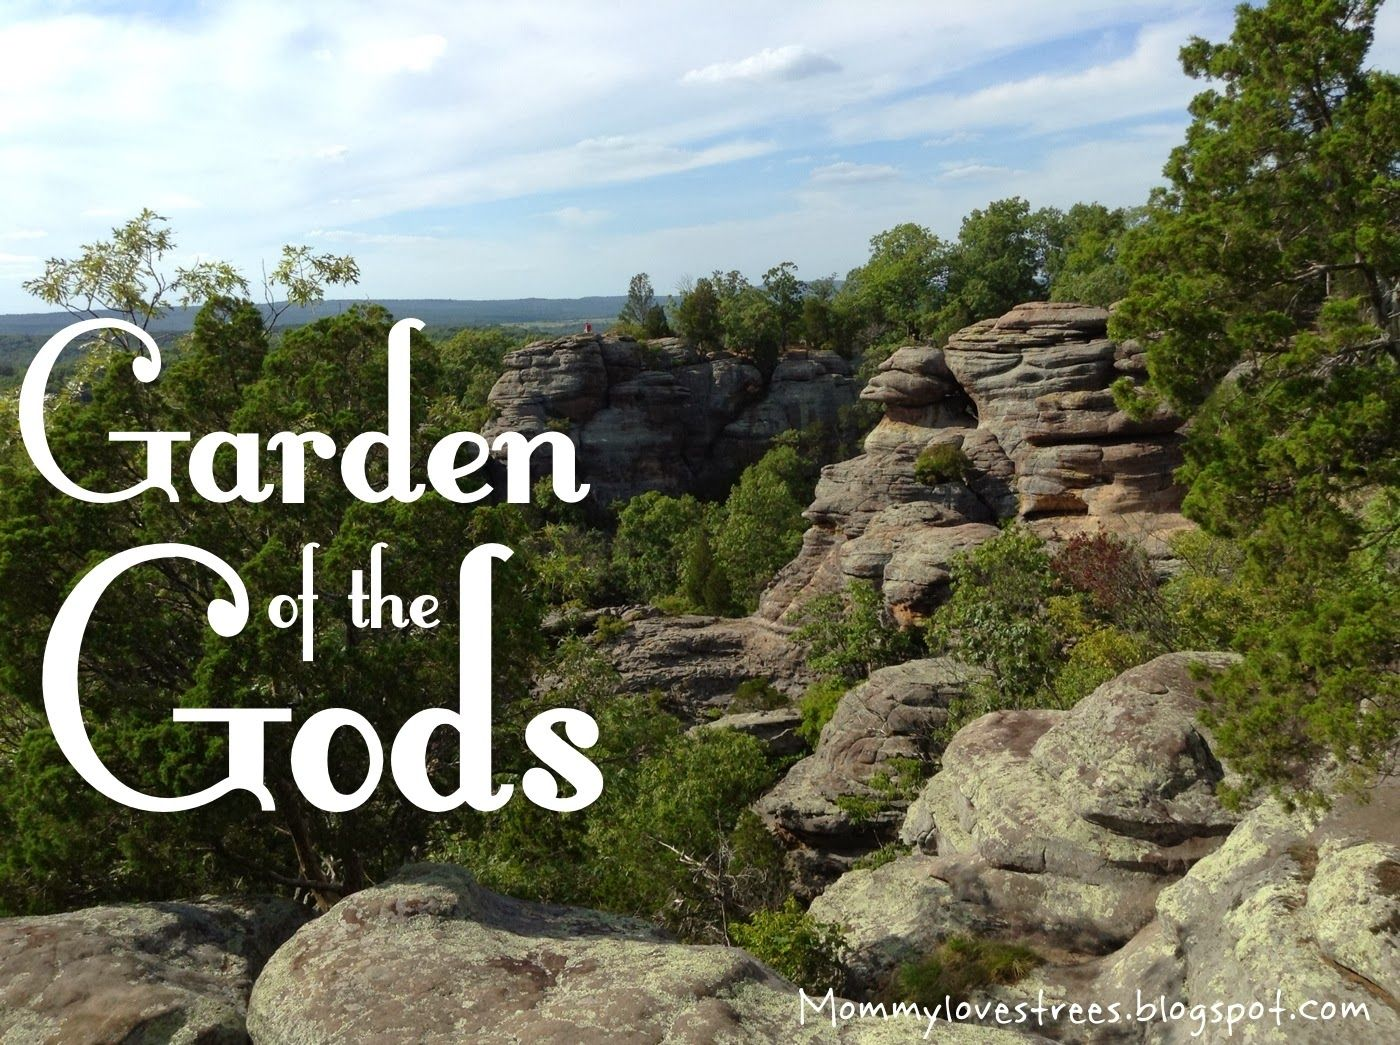 garden of the gods shawnee national forest when we moved to the midwest the first place recommended to us for - Shawnee National Forest Garden Of The Gods